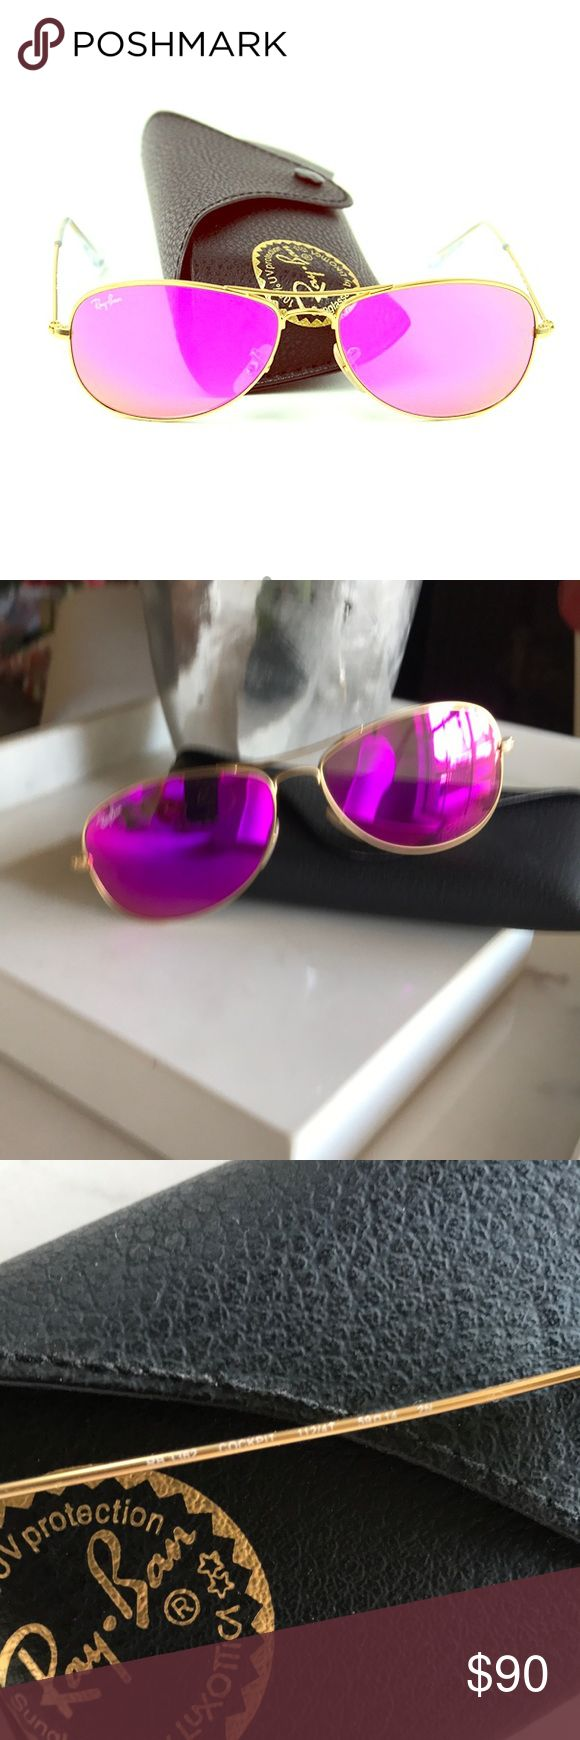 Ray Ban Cockpit Polarized Aviators Ray Ban 3362 Cockpit Polarized Aviator Sunglasses. 112/4t. -  BEAUTIFUL hot pink sunglasses with gold frames and never wore. Not even once. Too small for my face. They are in perfect condition with the case.  *know your RBs these are the smaller frame aviator. No scratches. Mint. Ray-Ban Accessories Sunglasses